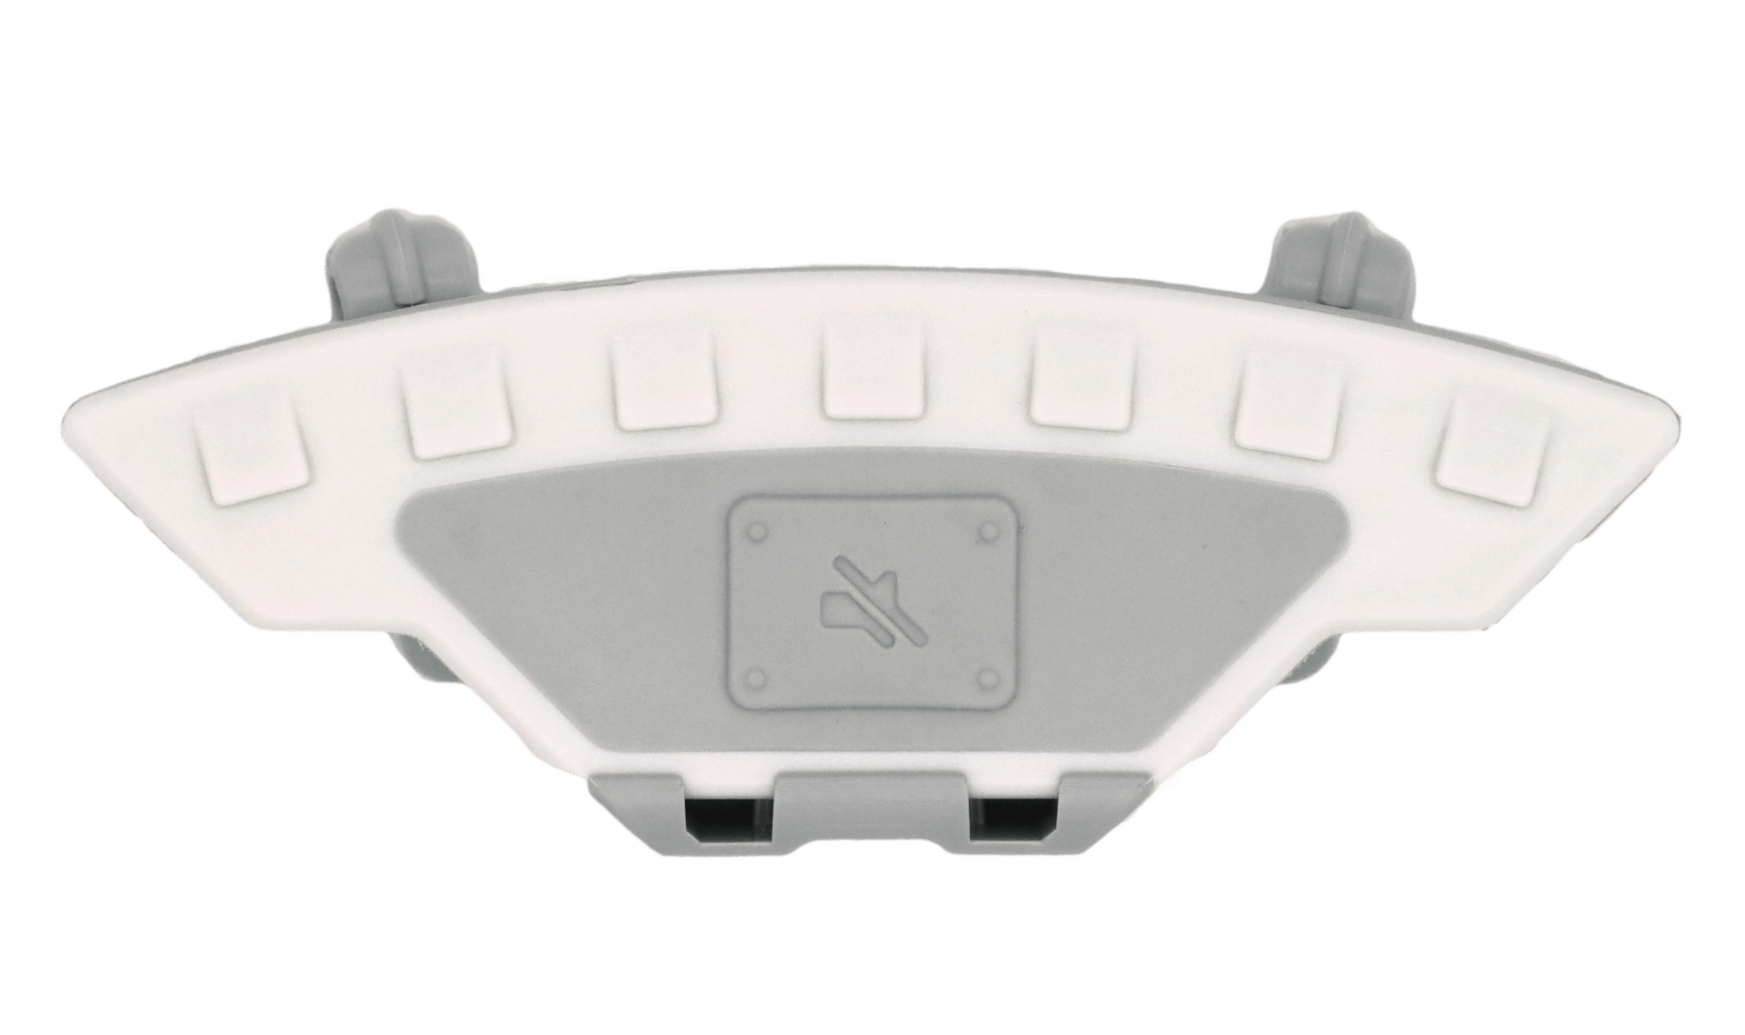 image of a Compass™ voltage and current detector device